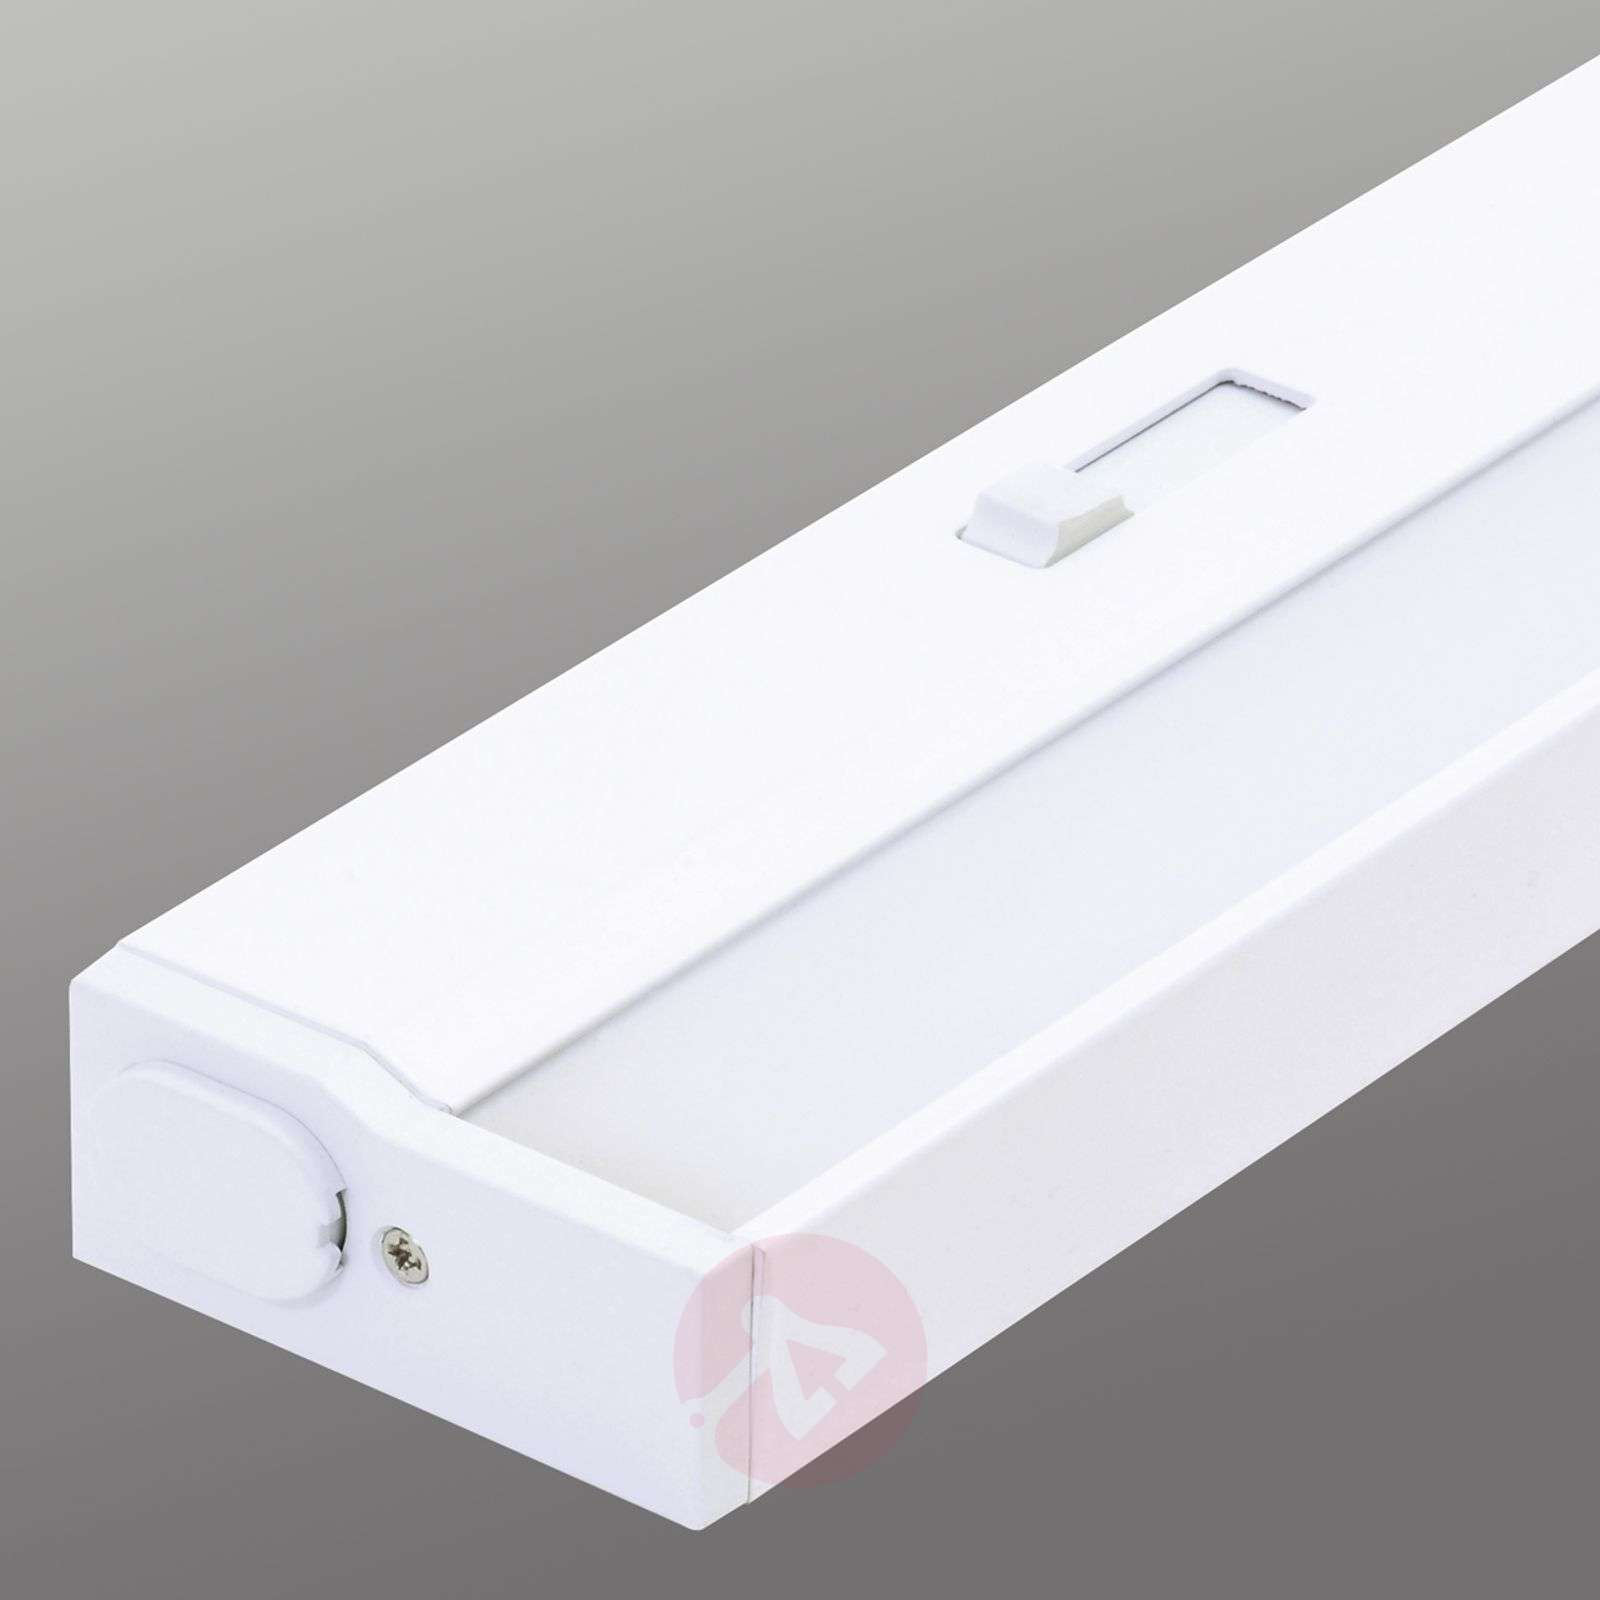 LED onderkastverlichting Cabinet Light - dimbaar | Lampen24.be